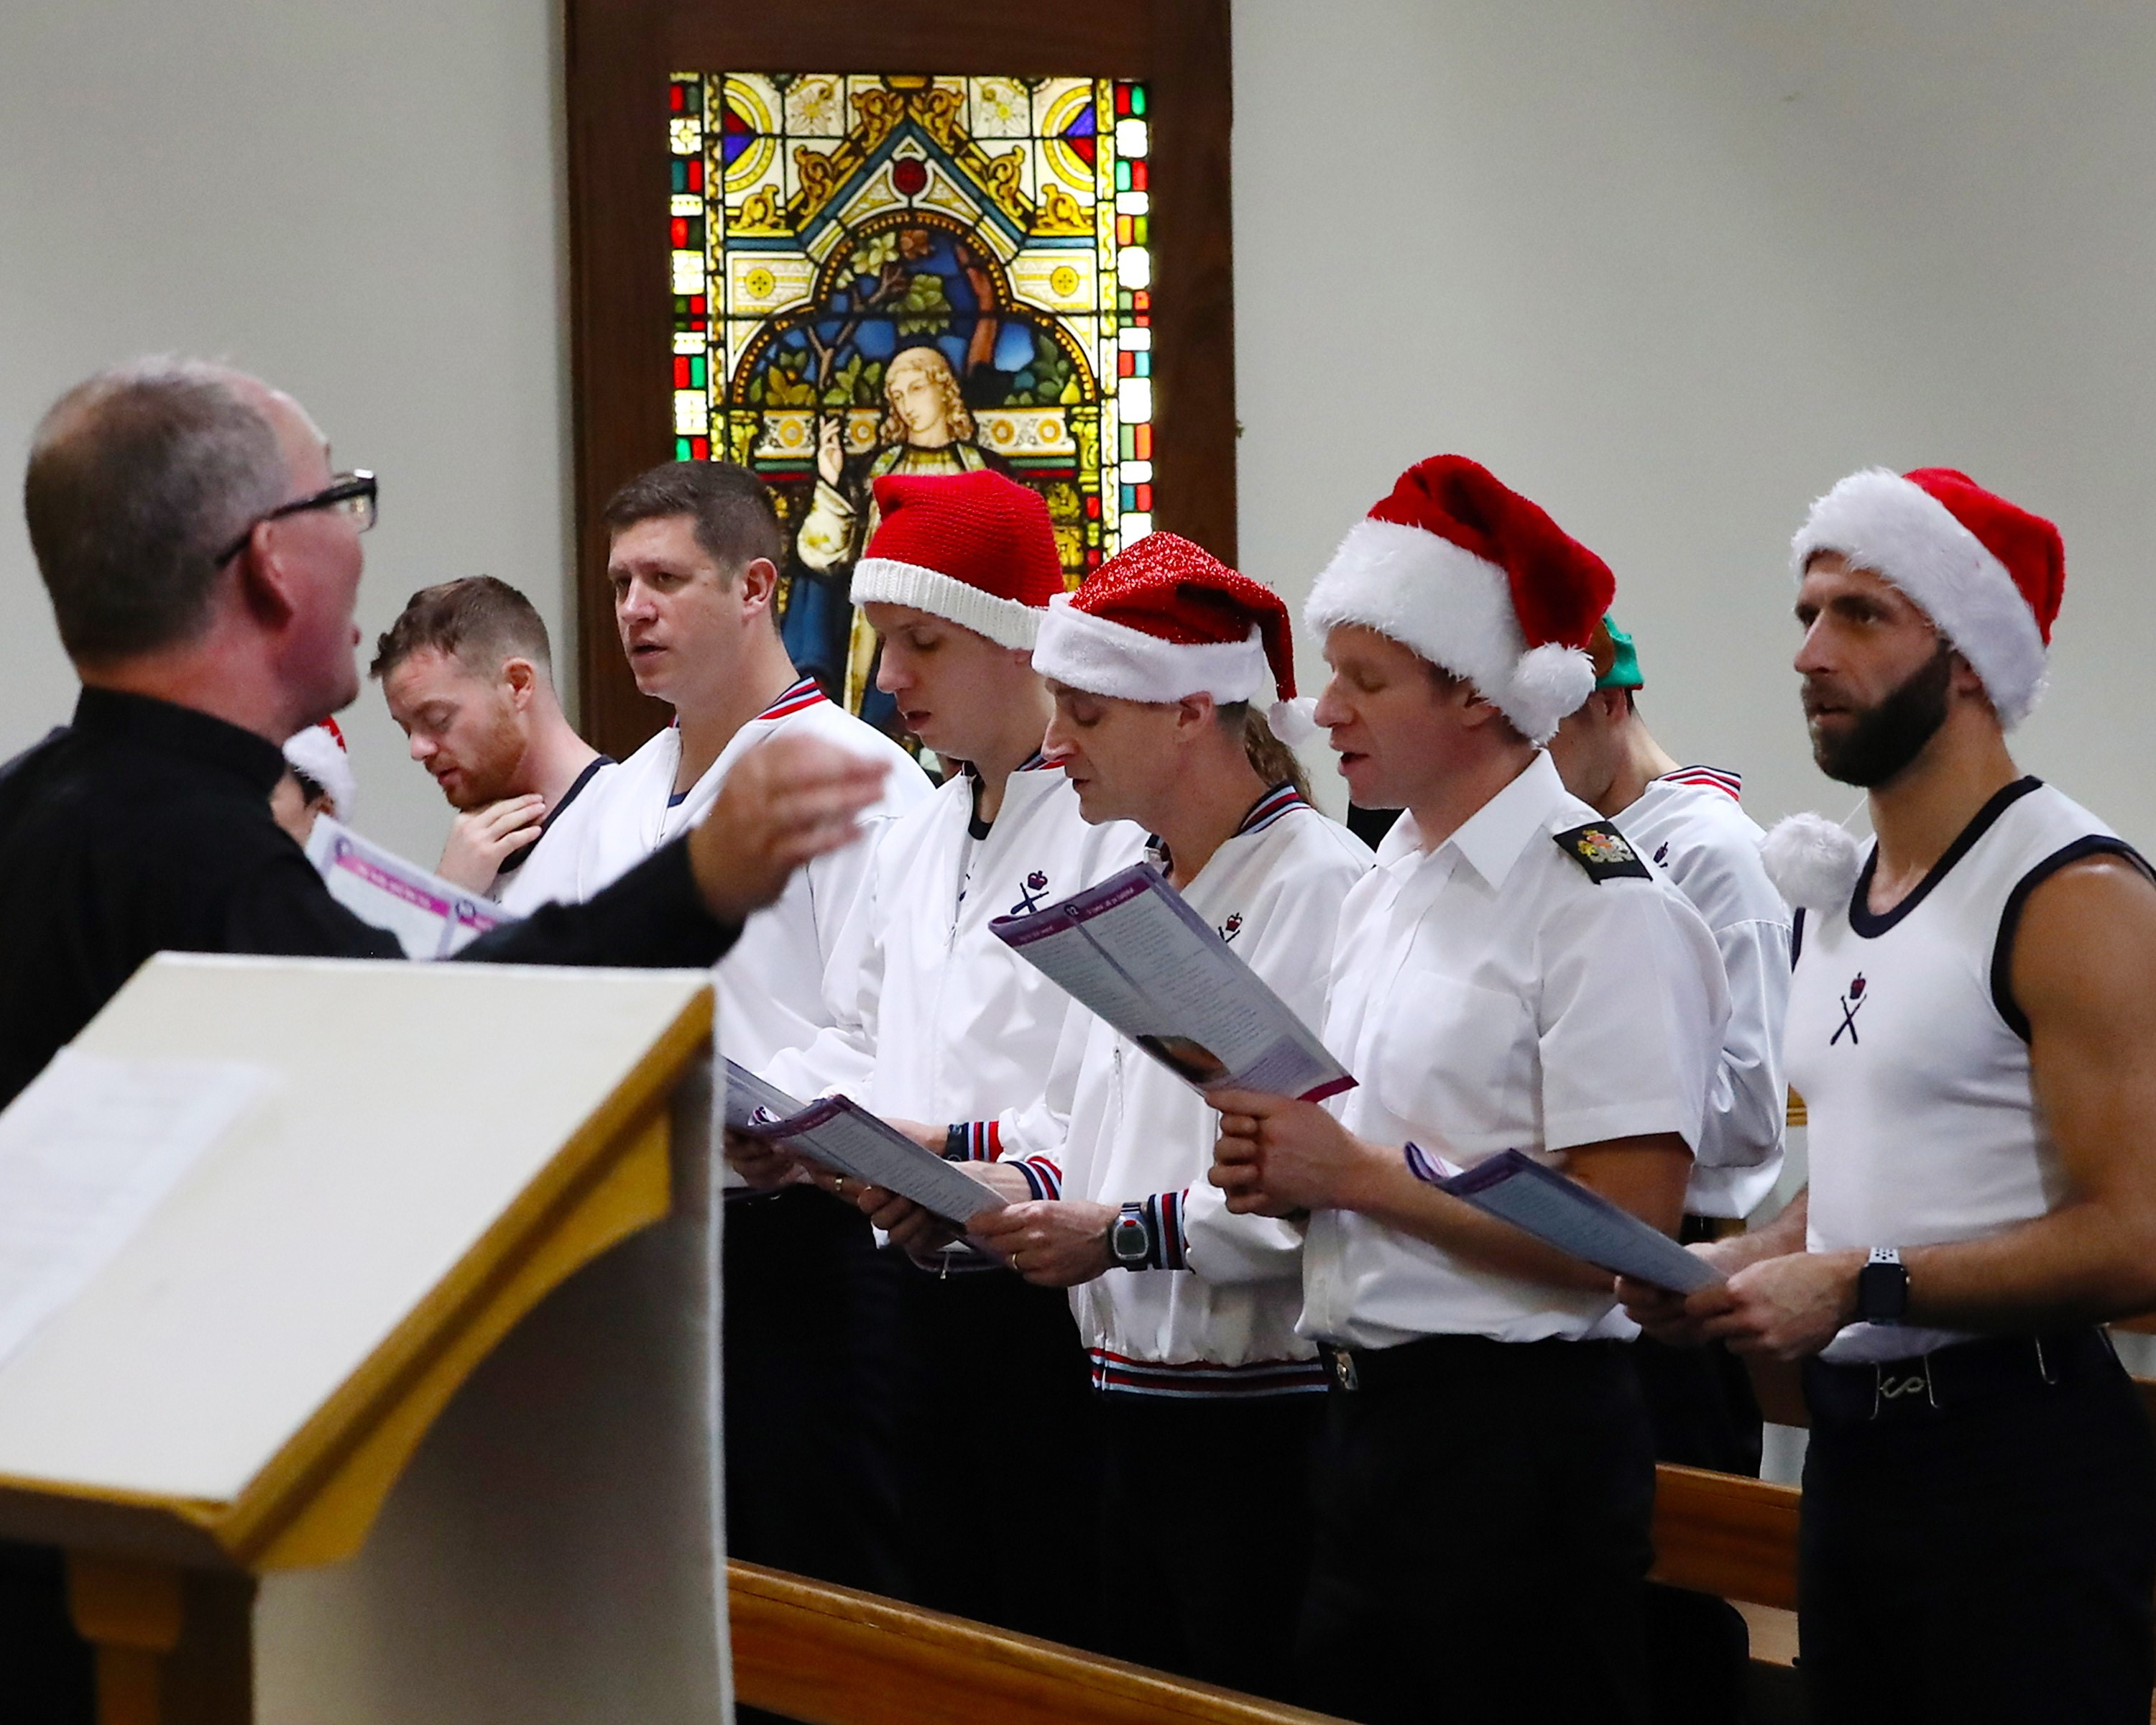 FASLANE STAFF JOIN IN THE BIG SING AT CHRISTMAS